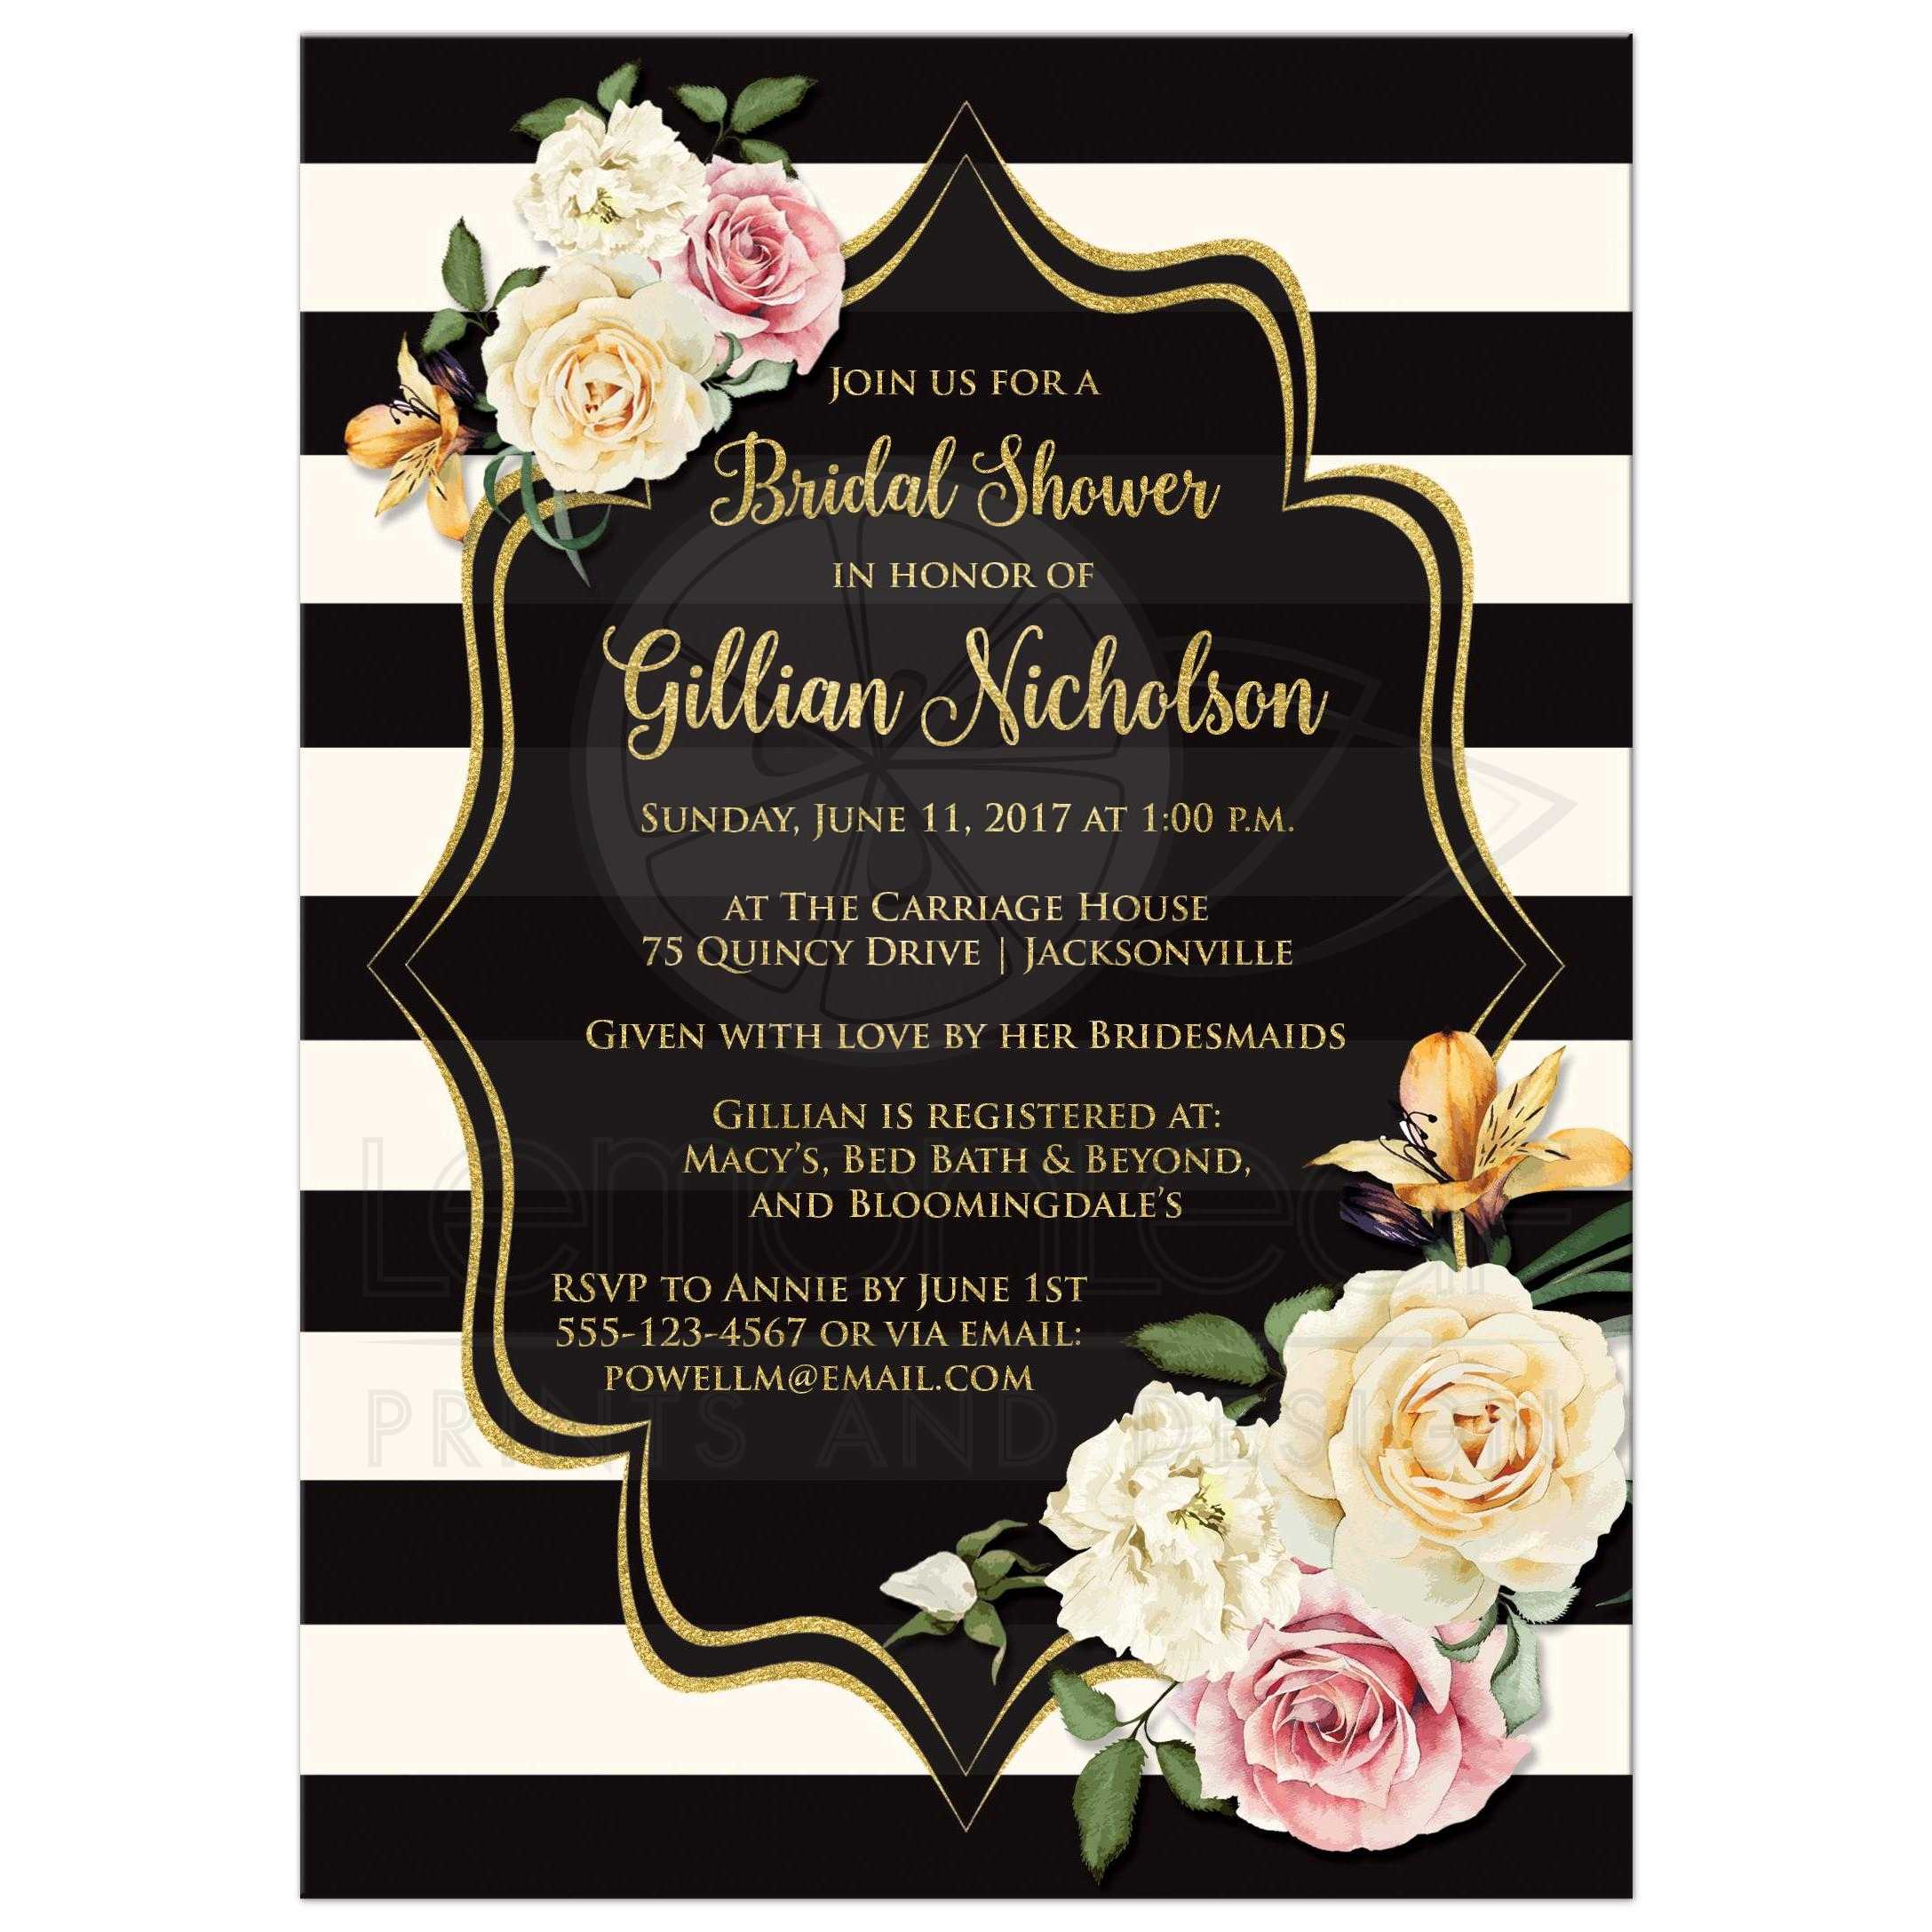 Bridal Shower Invitation Black Ivory Stripes – Couples Shower Wedding Invitations